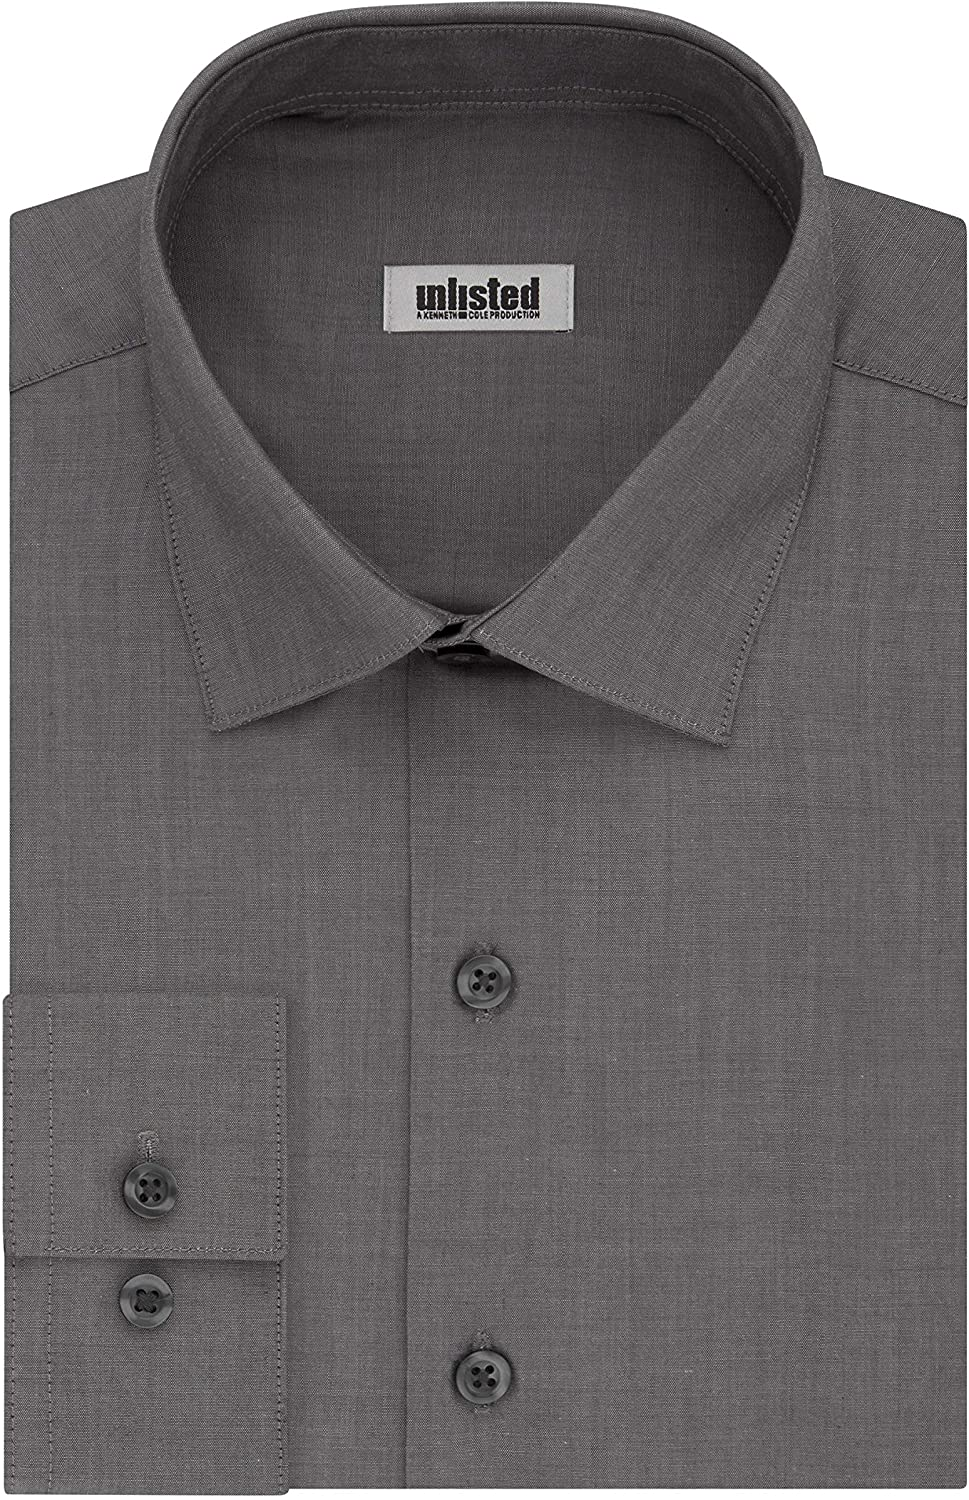 Kenneth Cole Unlisted Men's Dress Shirt Big and Tall Solid